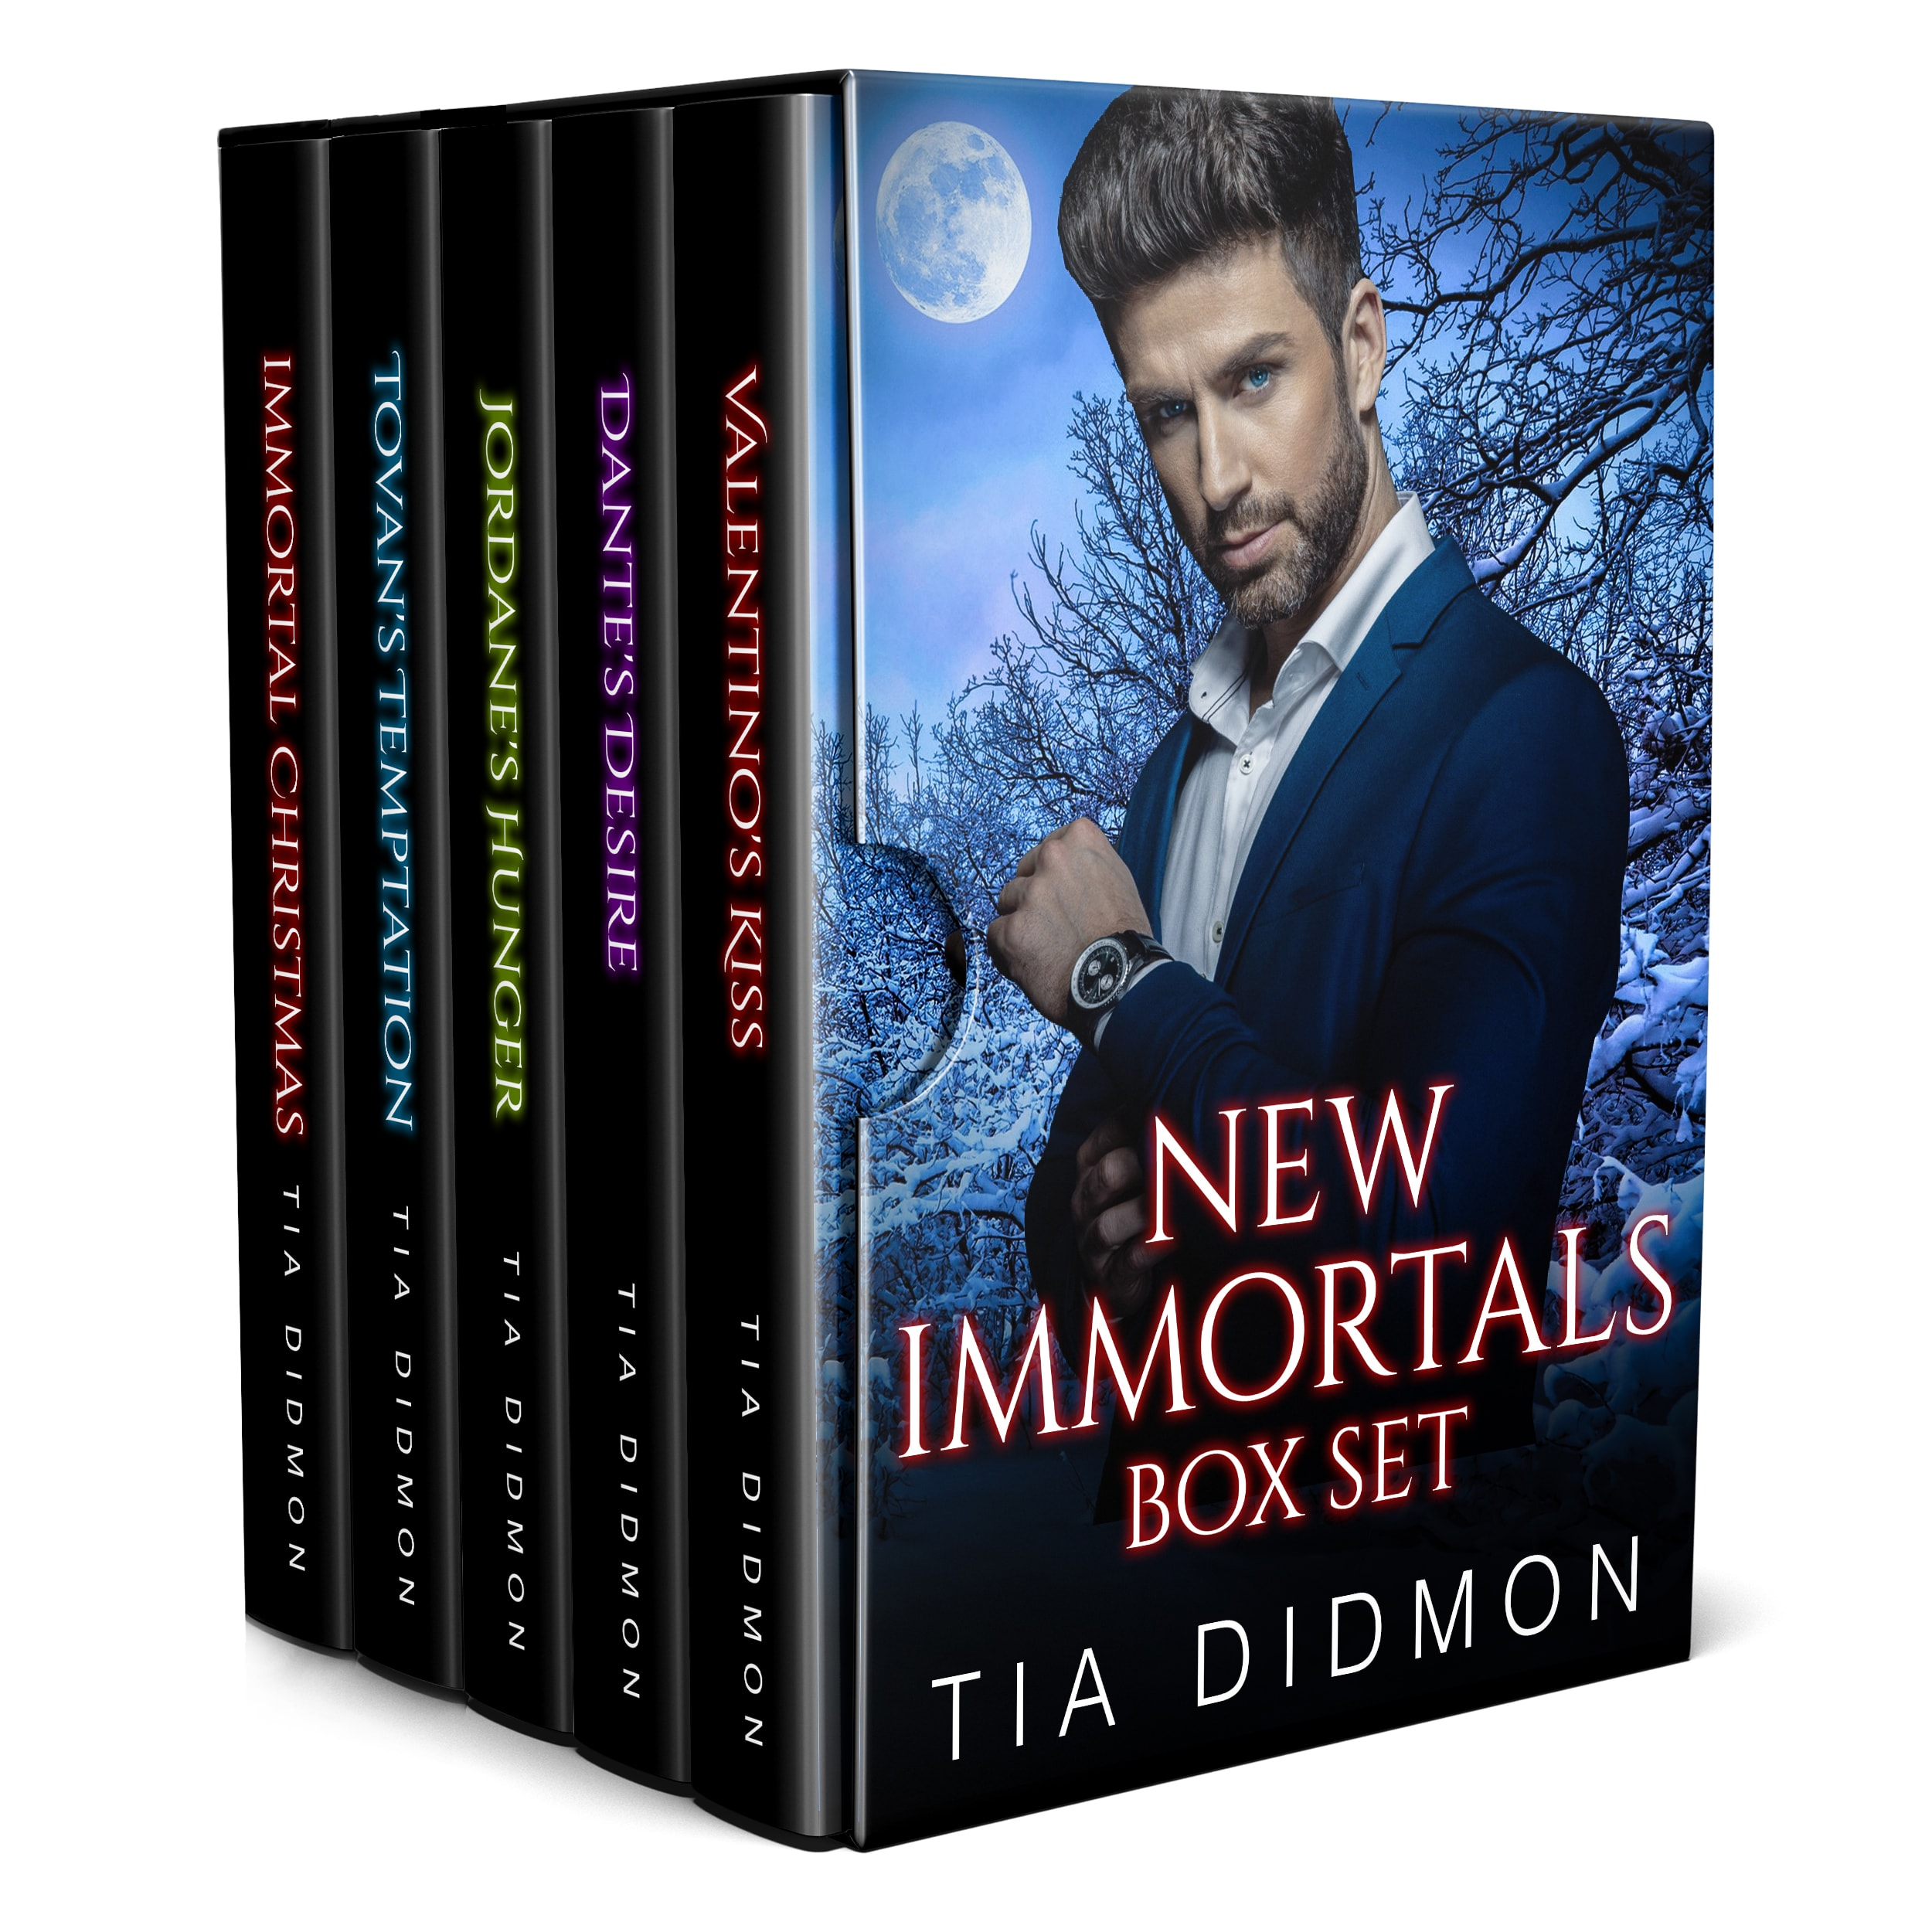 New Immortals Box Set